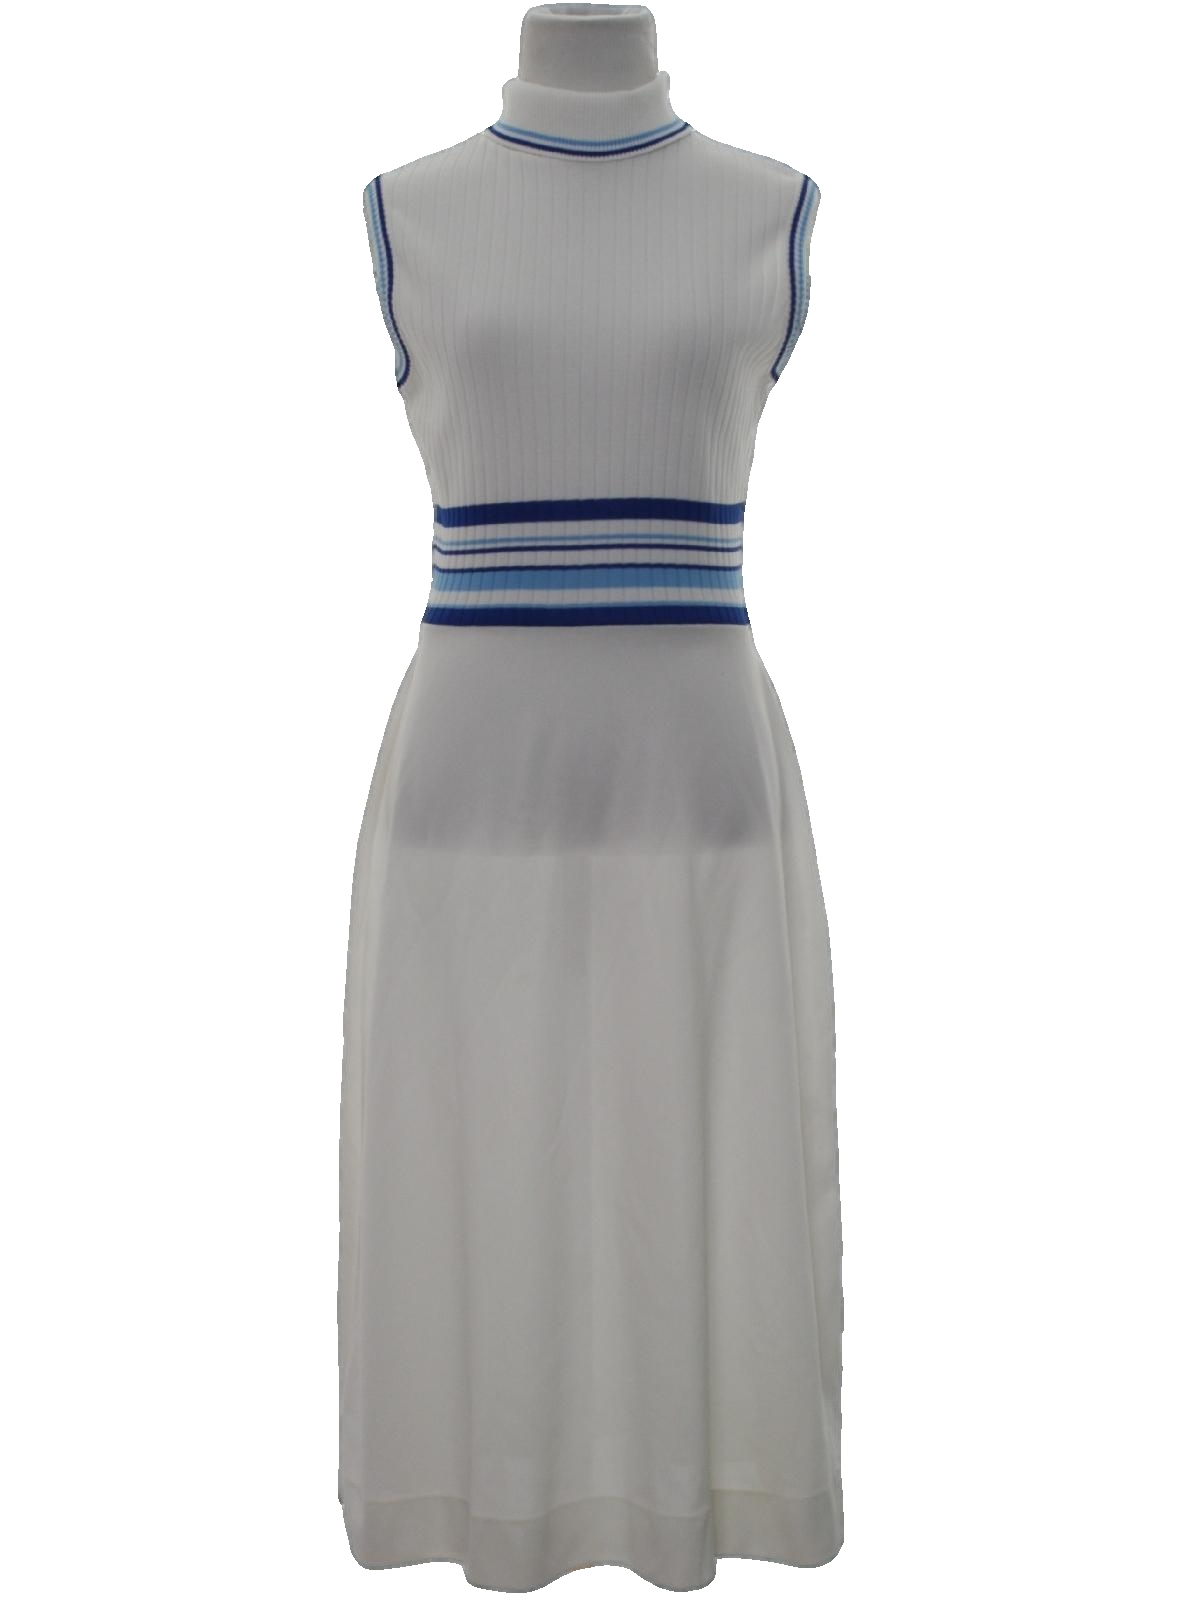 Vintage Sears 1970s Dress: 70s -Sears- Womens white background ...